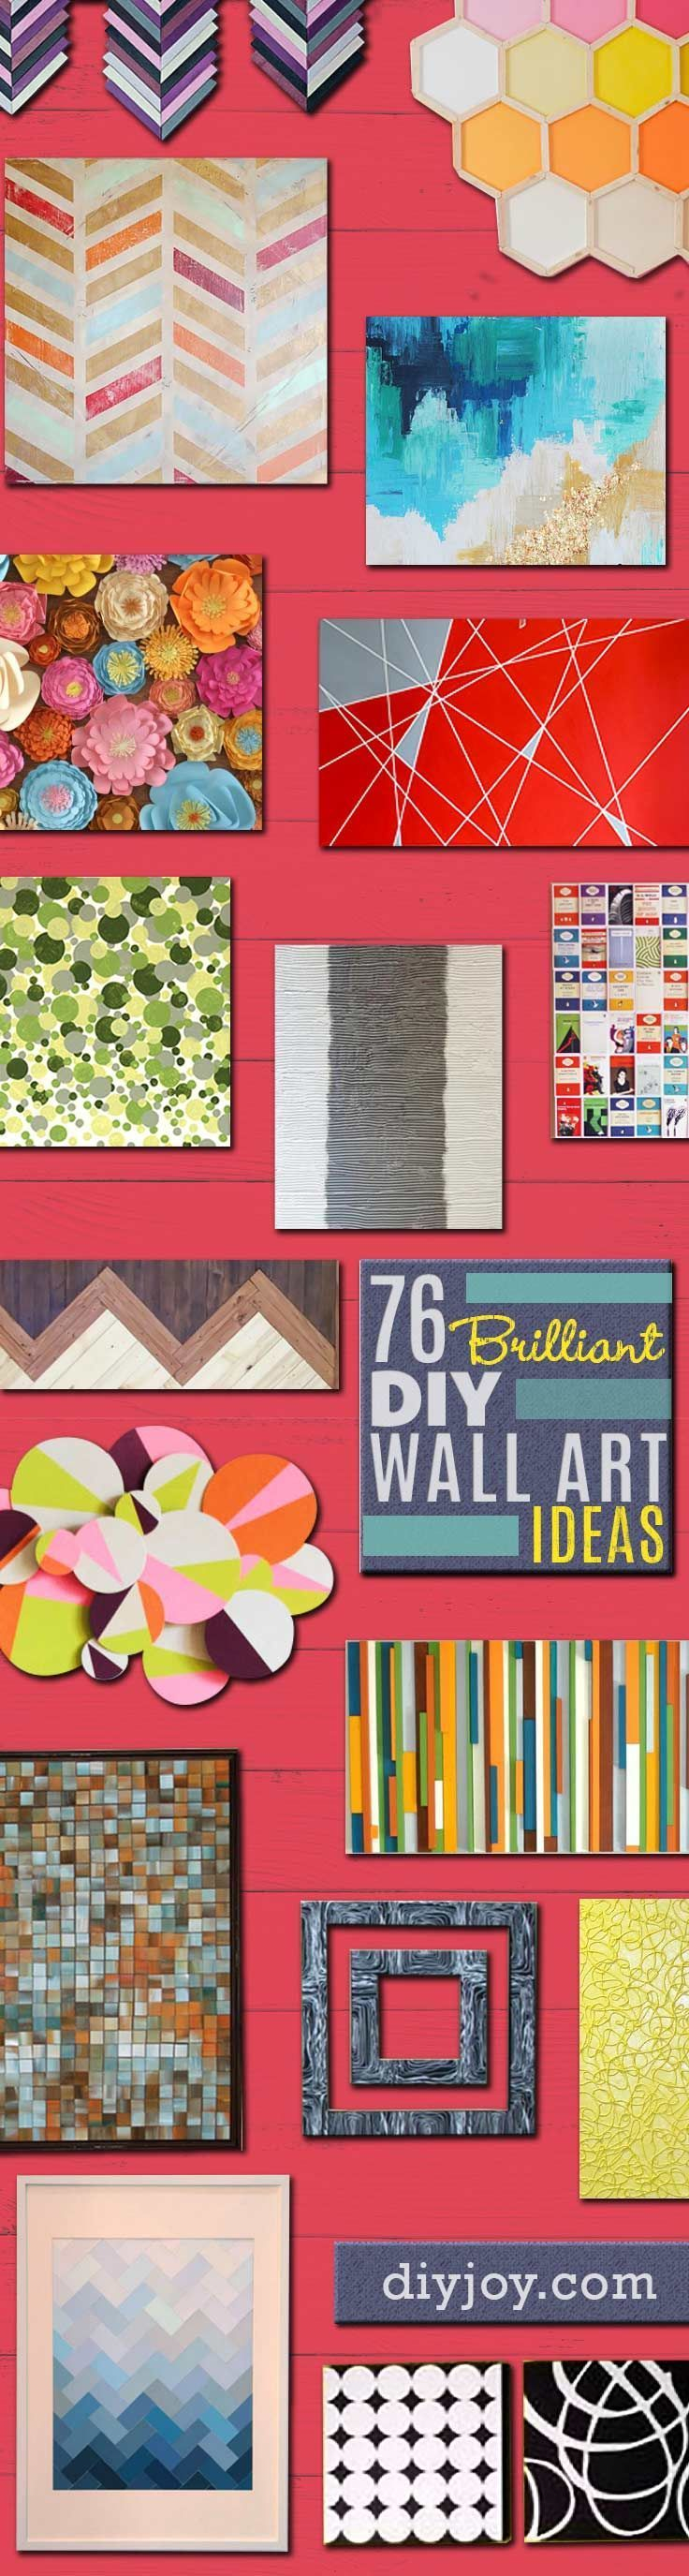 brilliant diy wall art ideas for your blank walls hanging